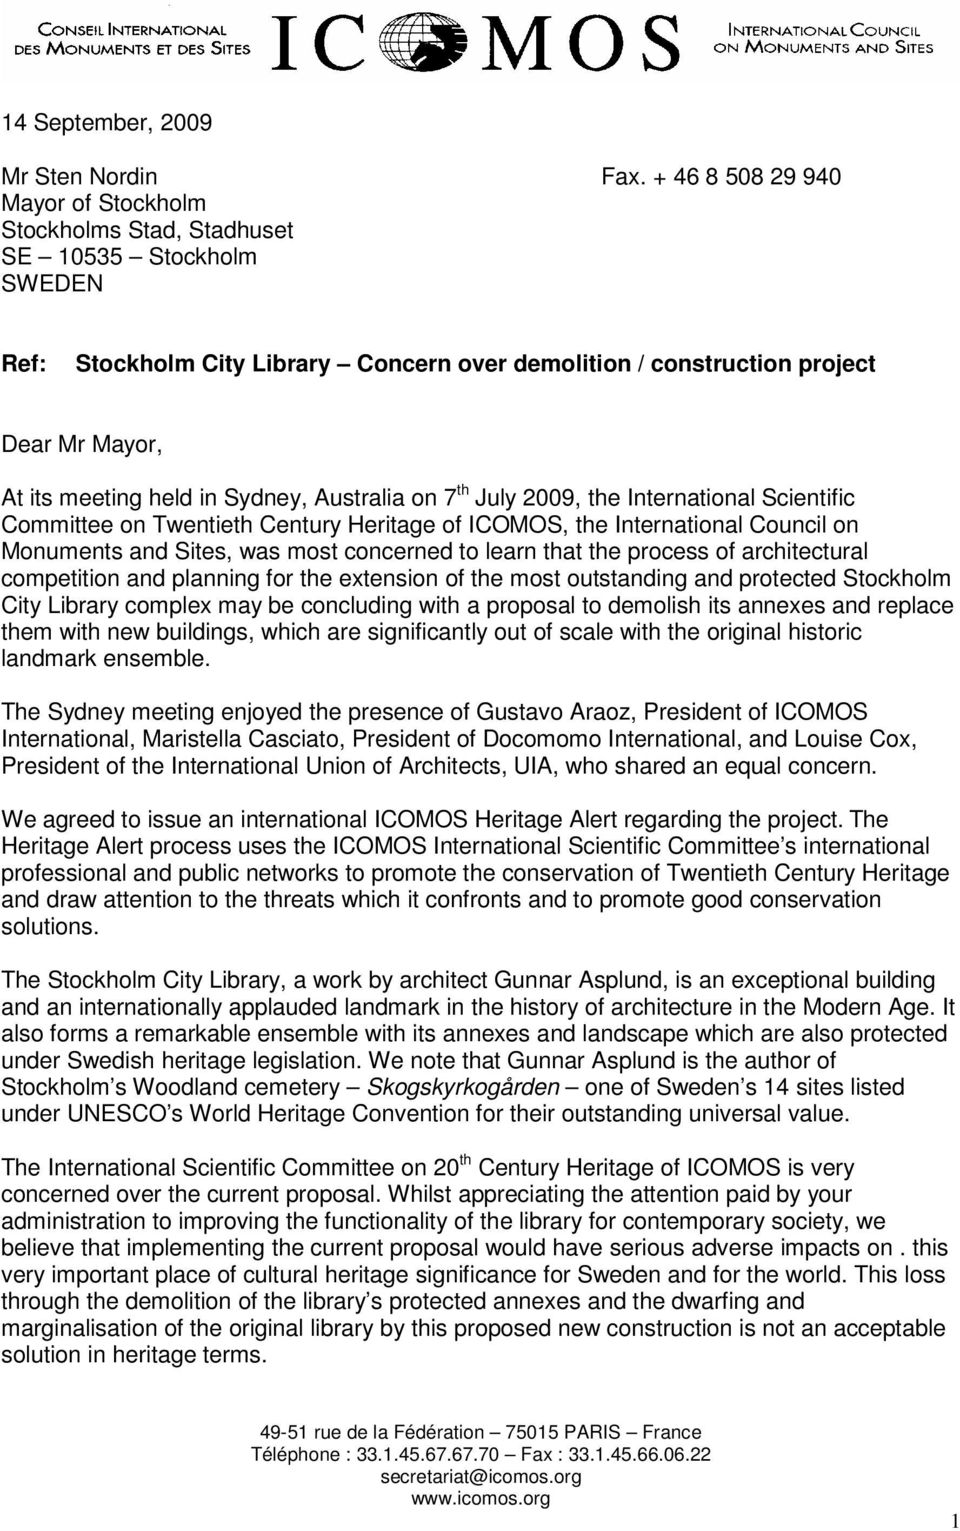 in Sydney, Australia on 7 th July 2009, the International Scientific Committee on Twentieth Century Heritage of ICOMOS, the International Council on Monuments and Sites, was most concerned to learn